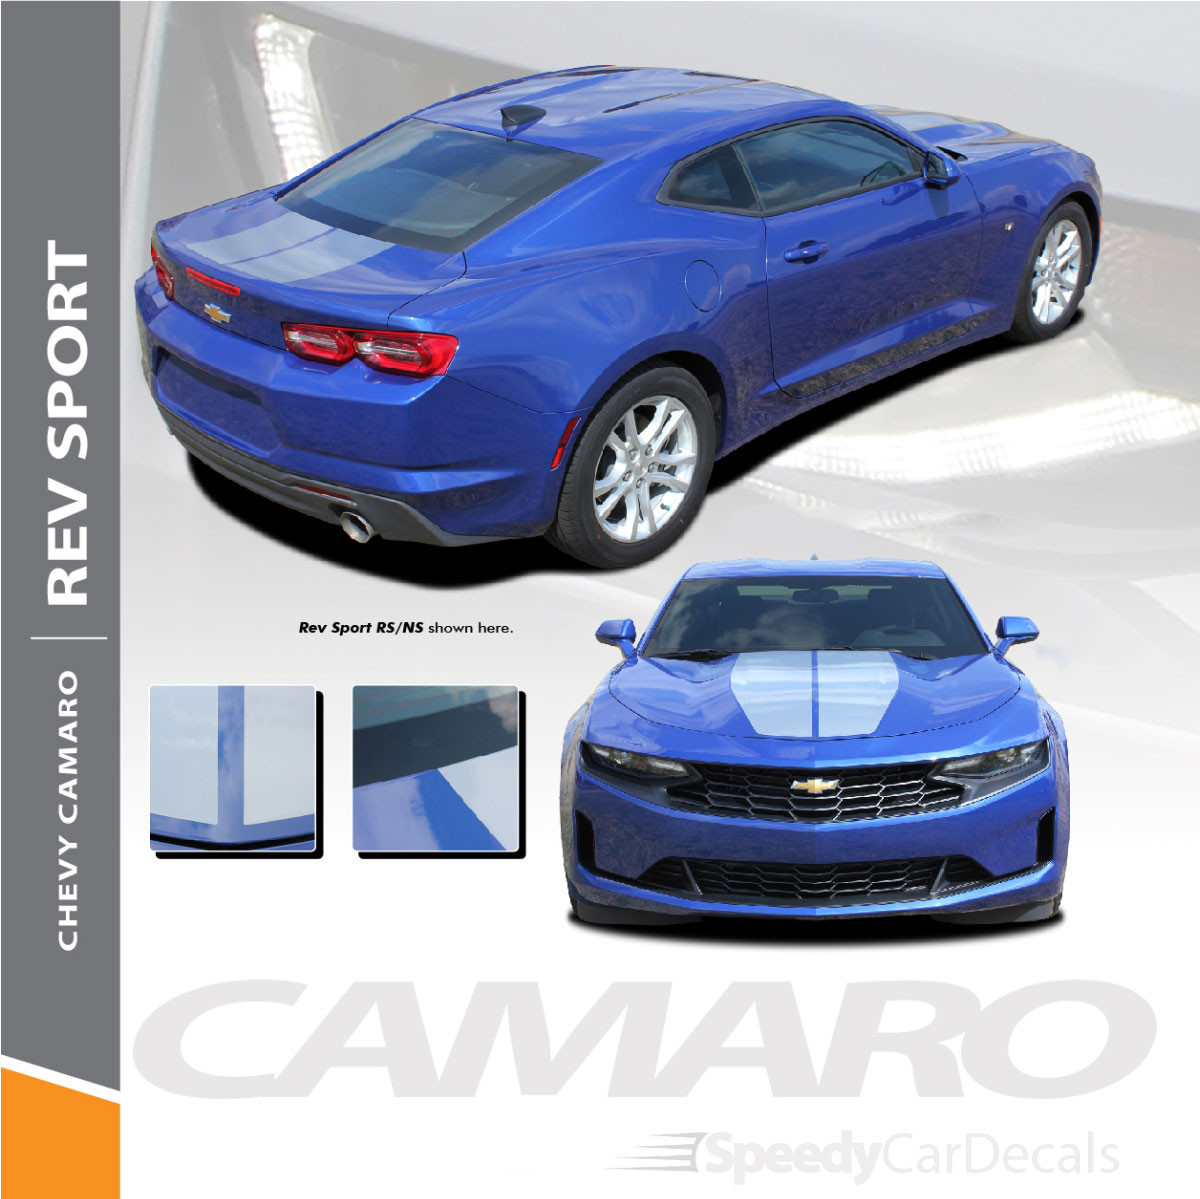 REV SPORT 2019 Chevy Camaro Racing Stripes, Center Hood Stripes  and Trunk Decals